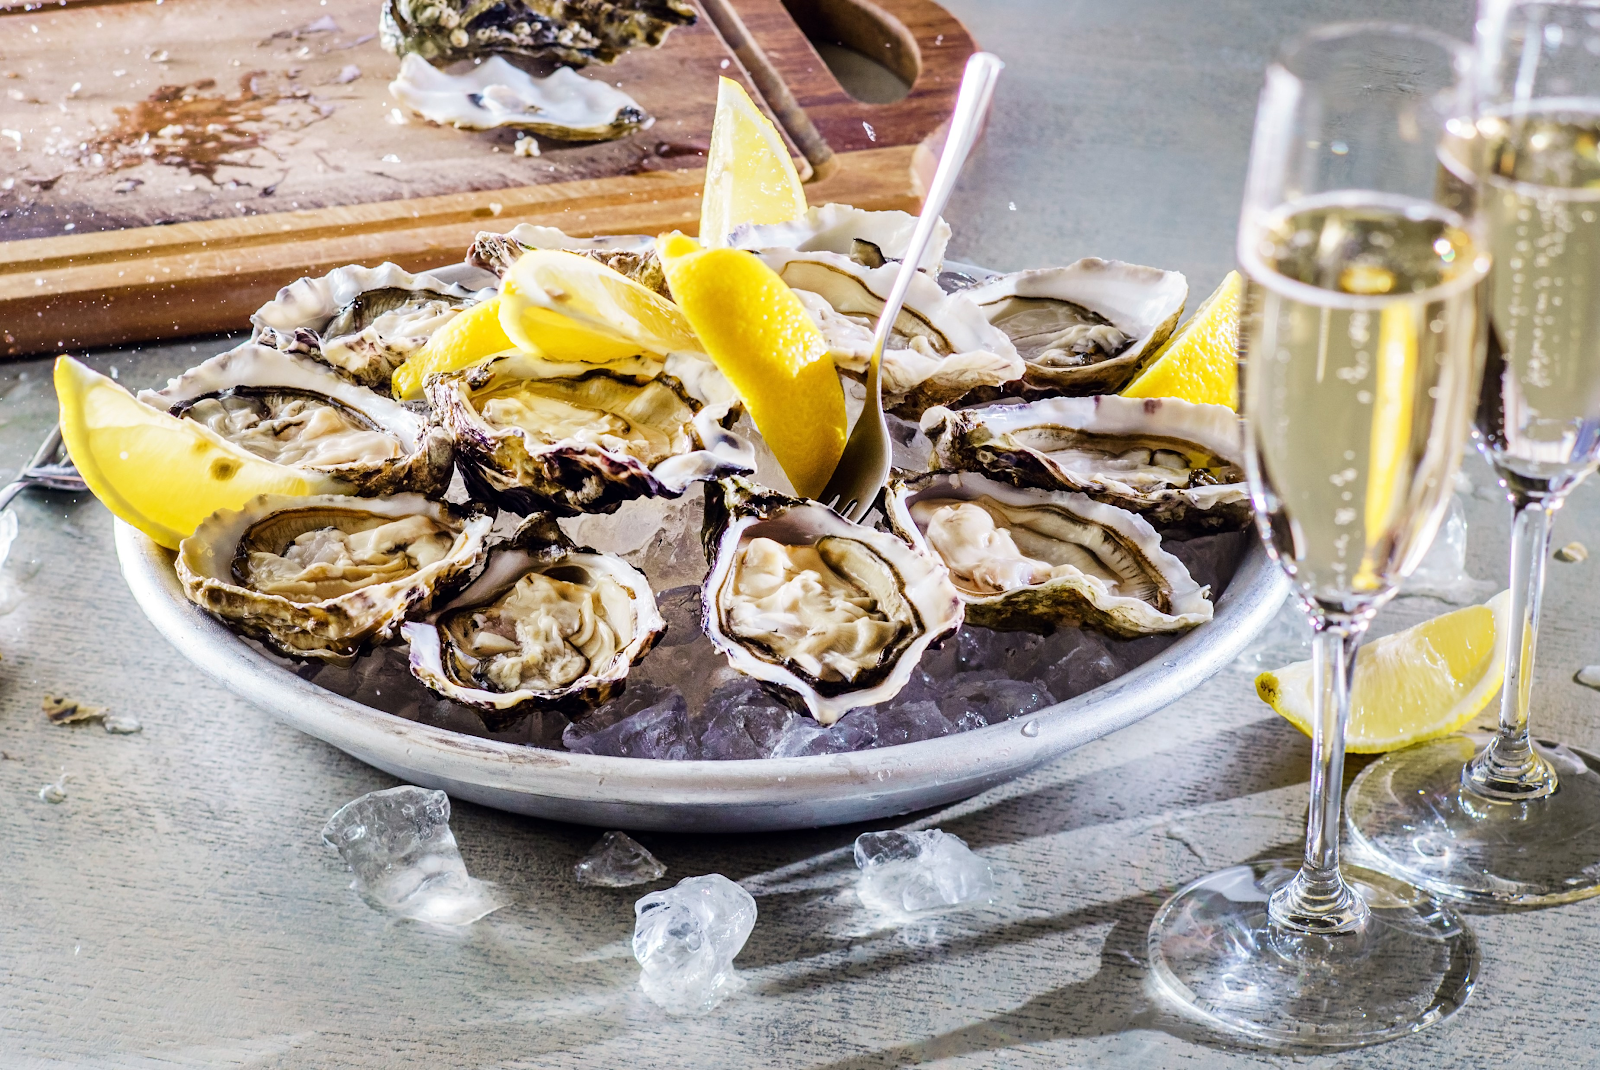 A platter of fresh oysters on the half shell is served on ice with lemon wedges.